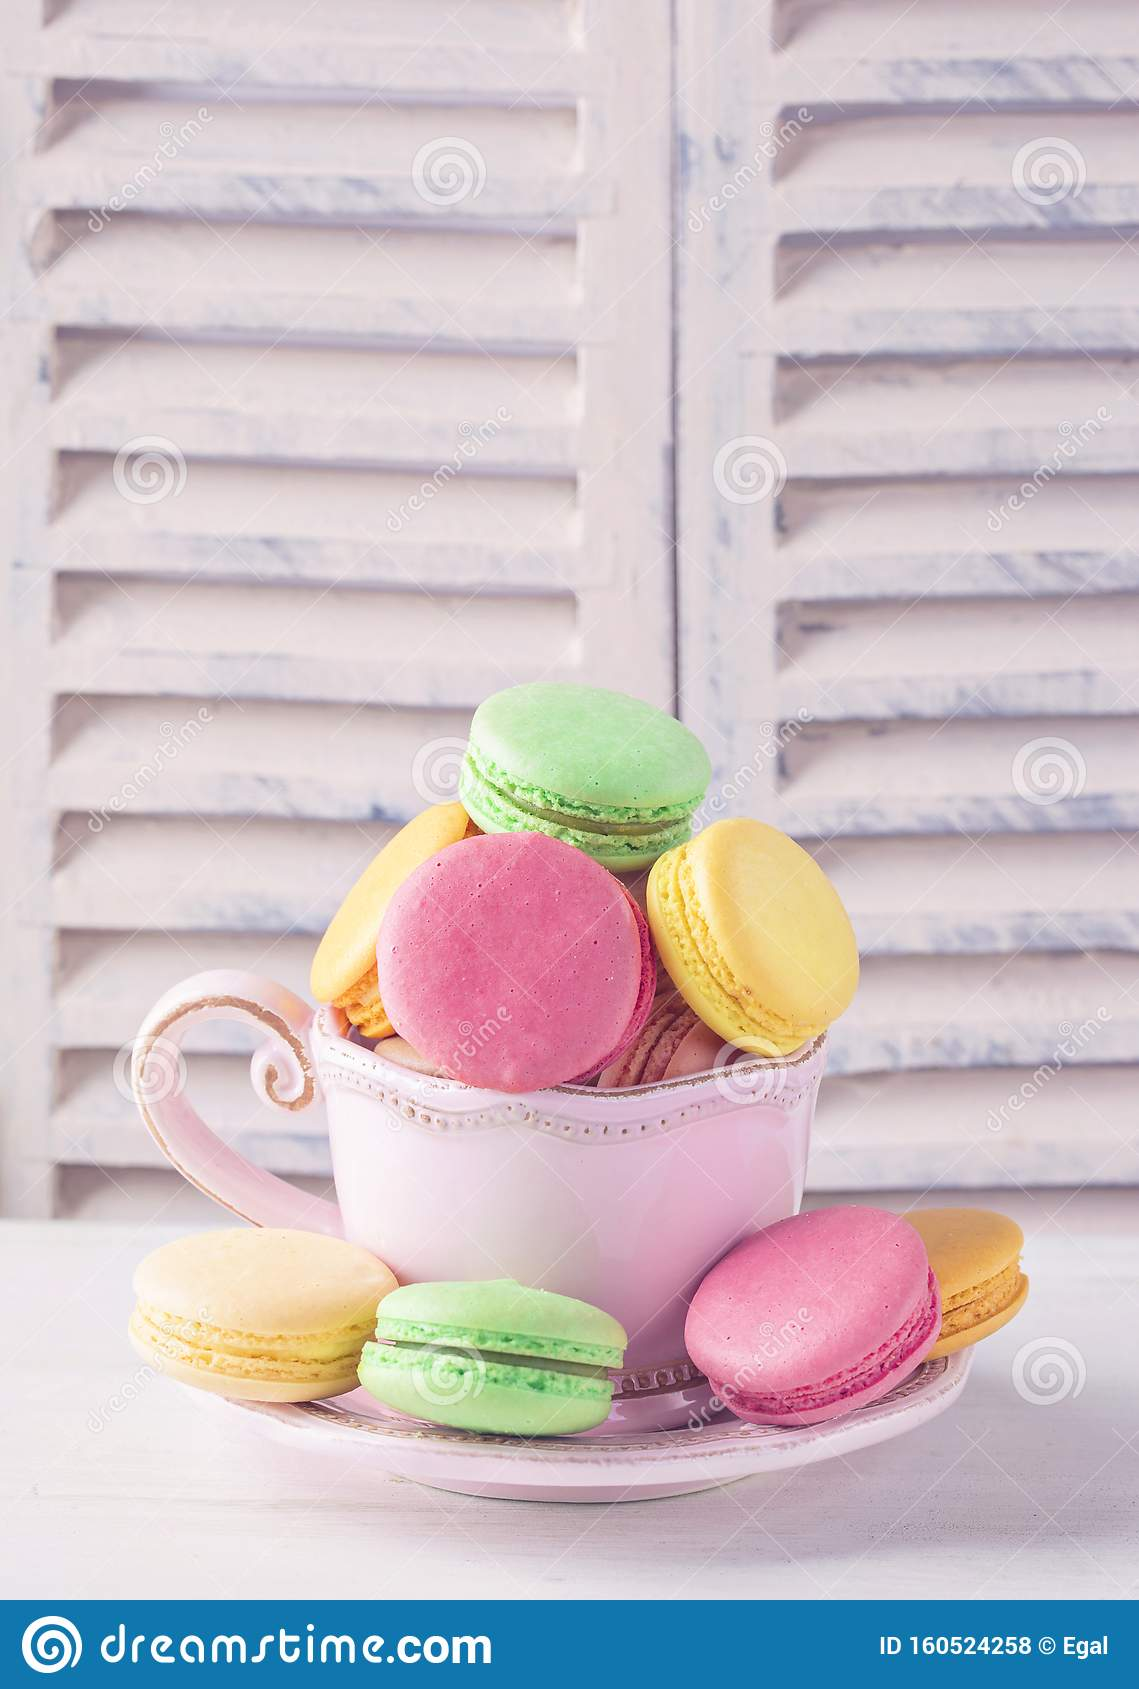 Colorful macarons in a cup